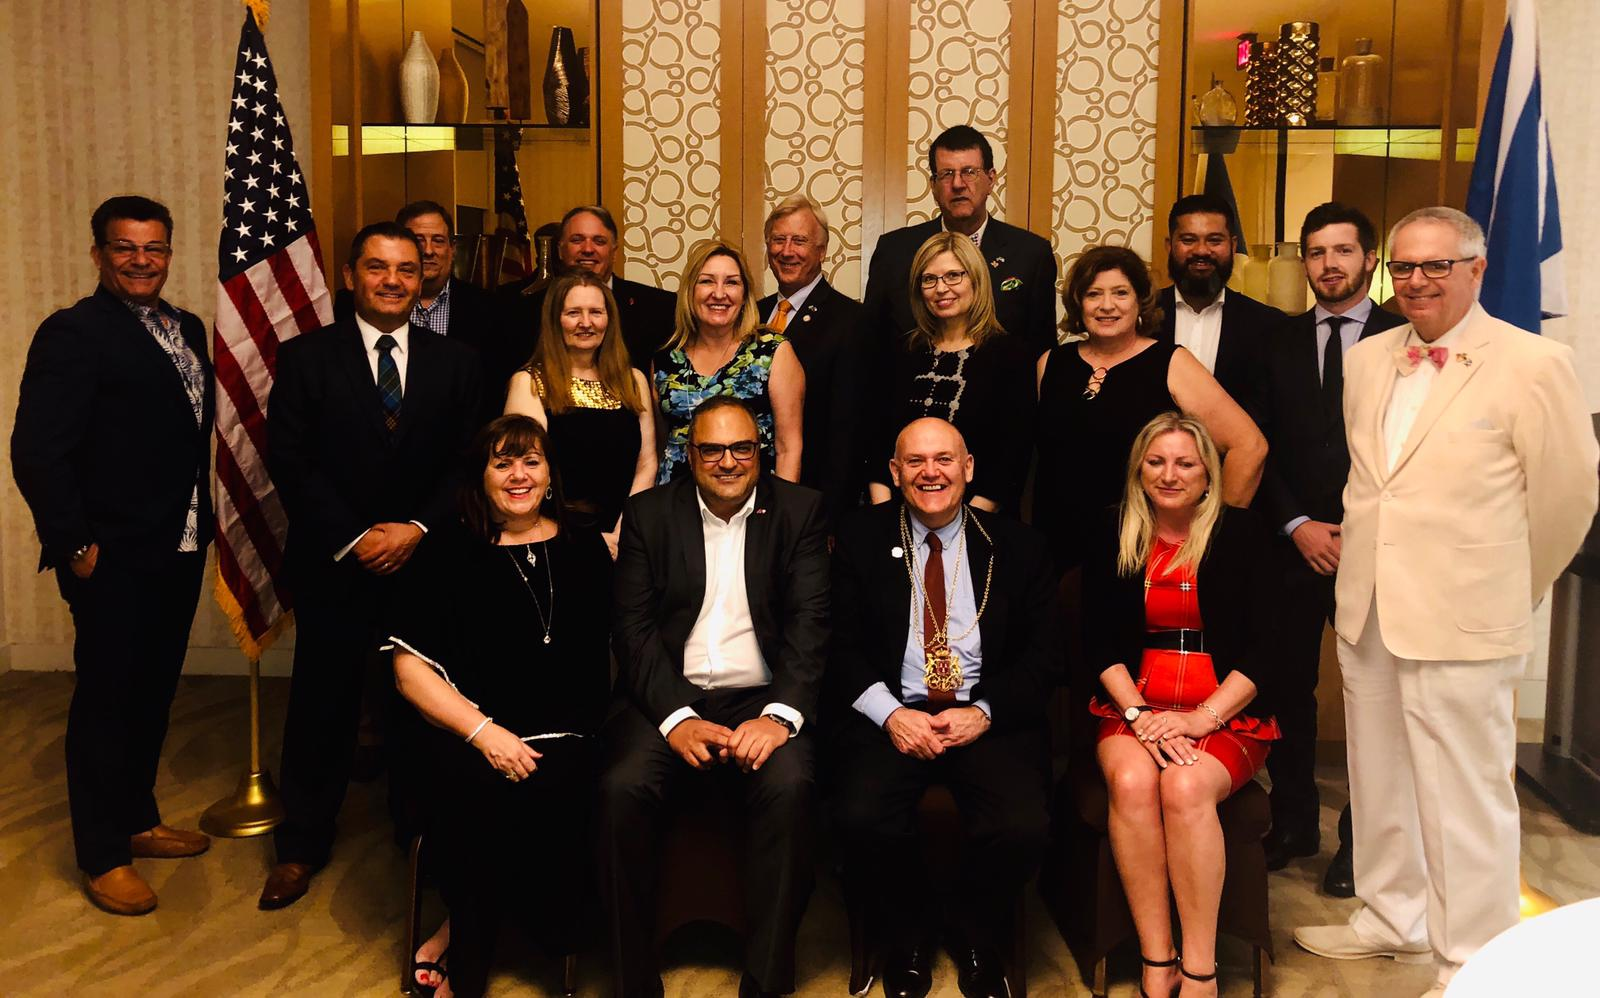 •The Lord Provost of Aberdeen Barney Crockett is seated next to Her Majesty's Consul General in Houston Richard Hyde at a special dinner organised by the Houston Aberdeen Association at the Houston Club on Tuesday 16 July.